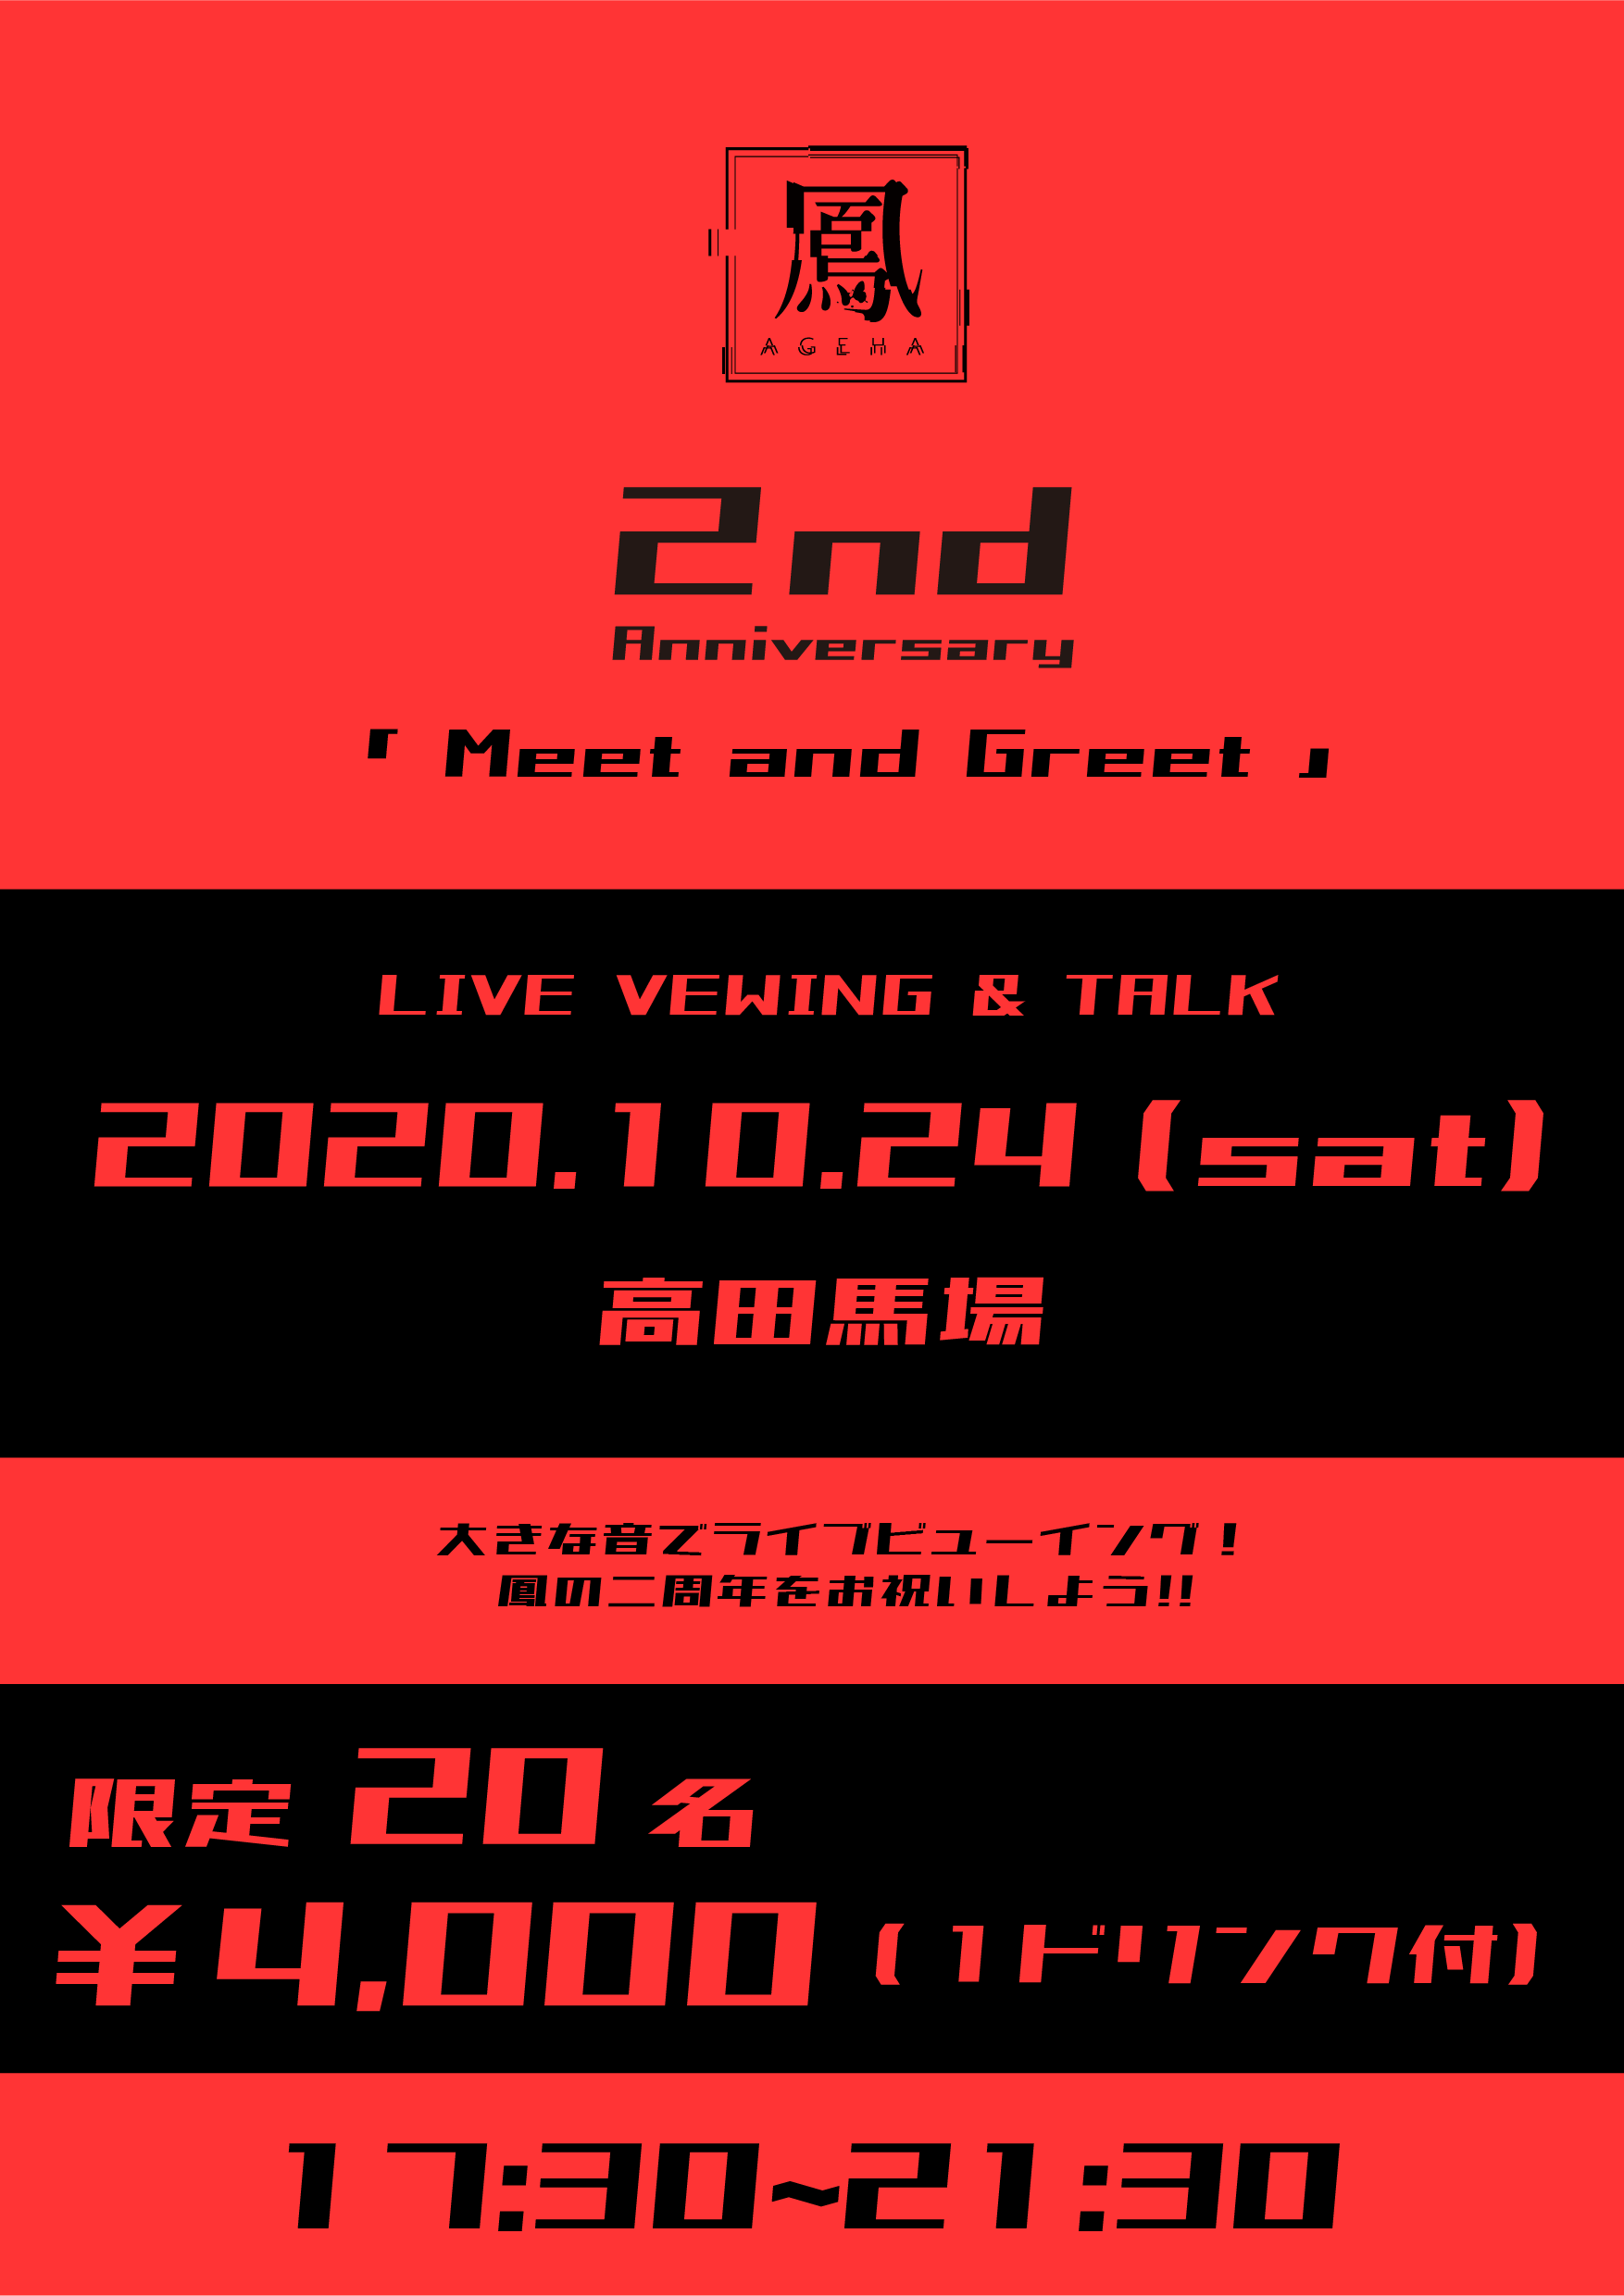 2nd Anniversary「 Meet and Greet 」開催